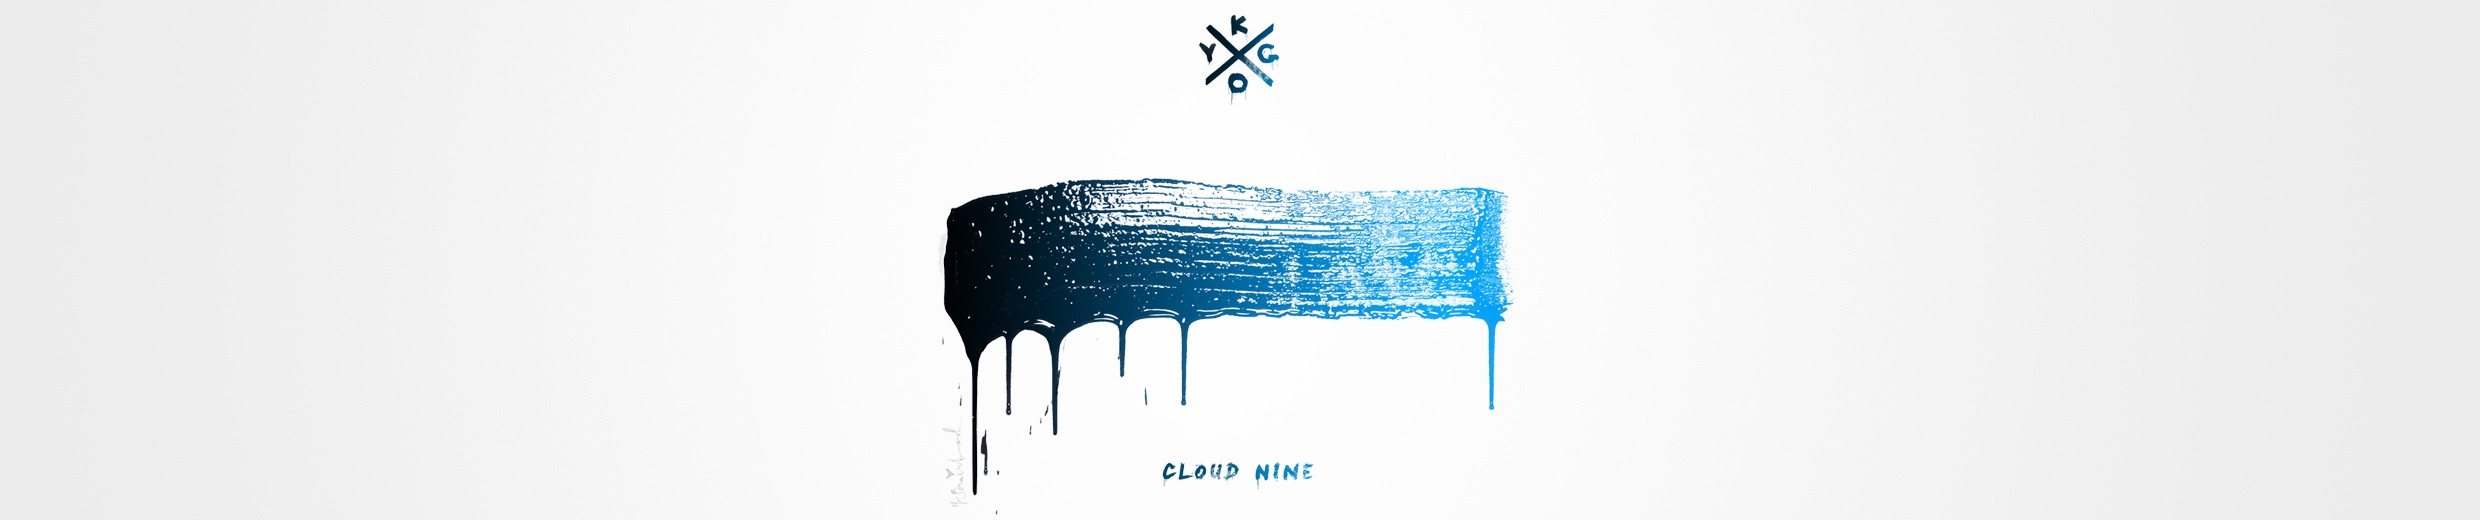 Kygo cloud nine album release